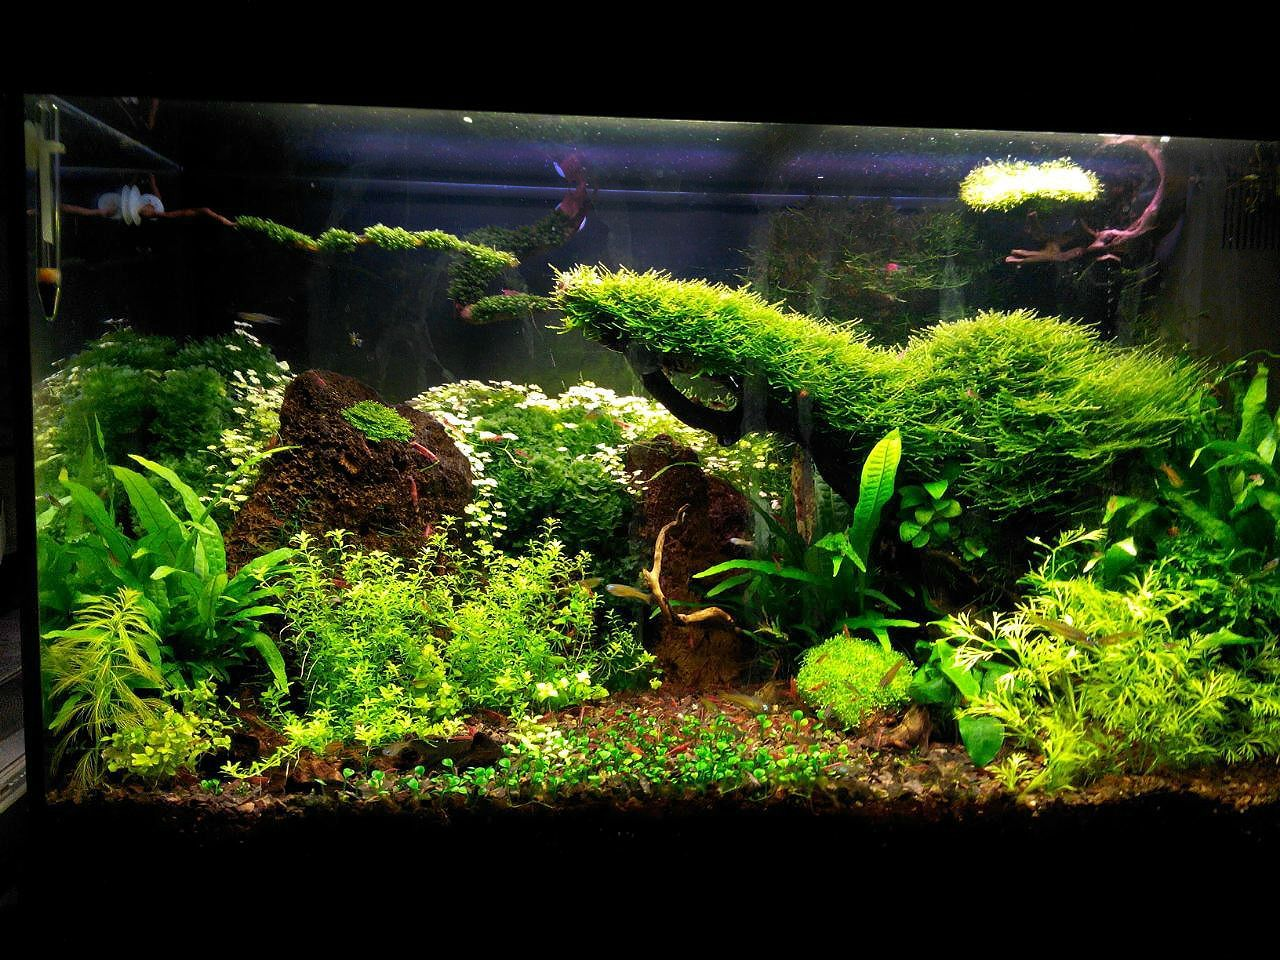 120 liter tank aquascaping pinterest aquariums fish. Black Bedroom Furniture Sets. Home Design Ideas